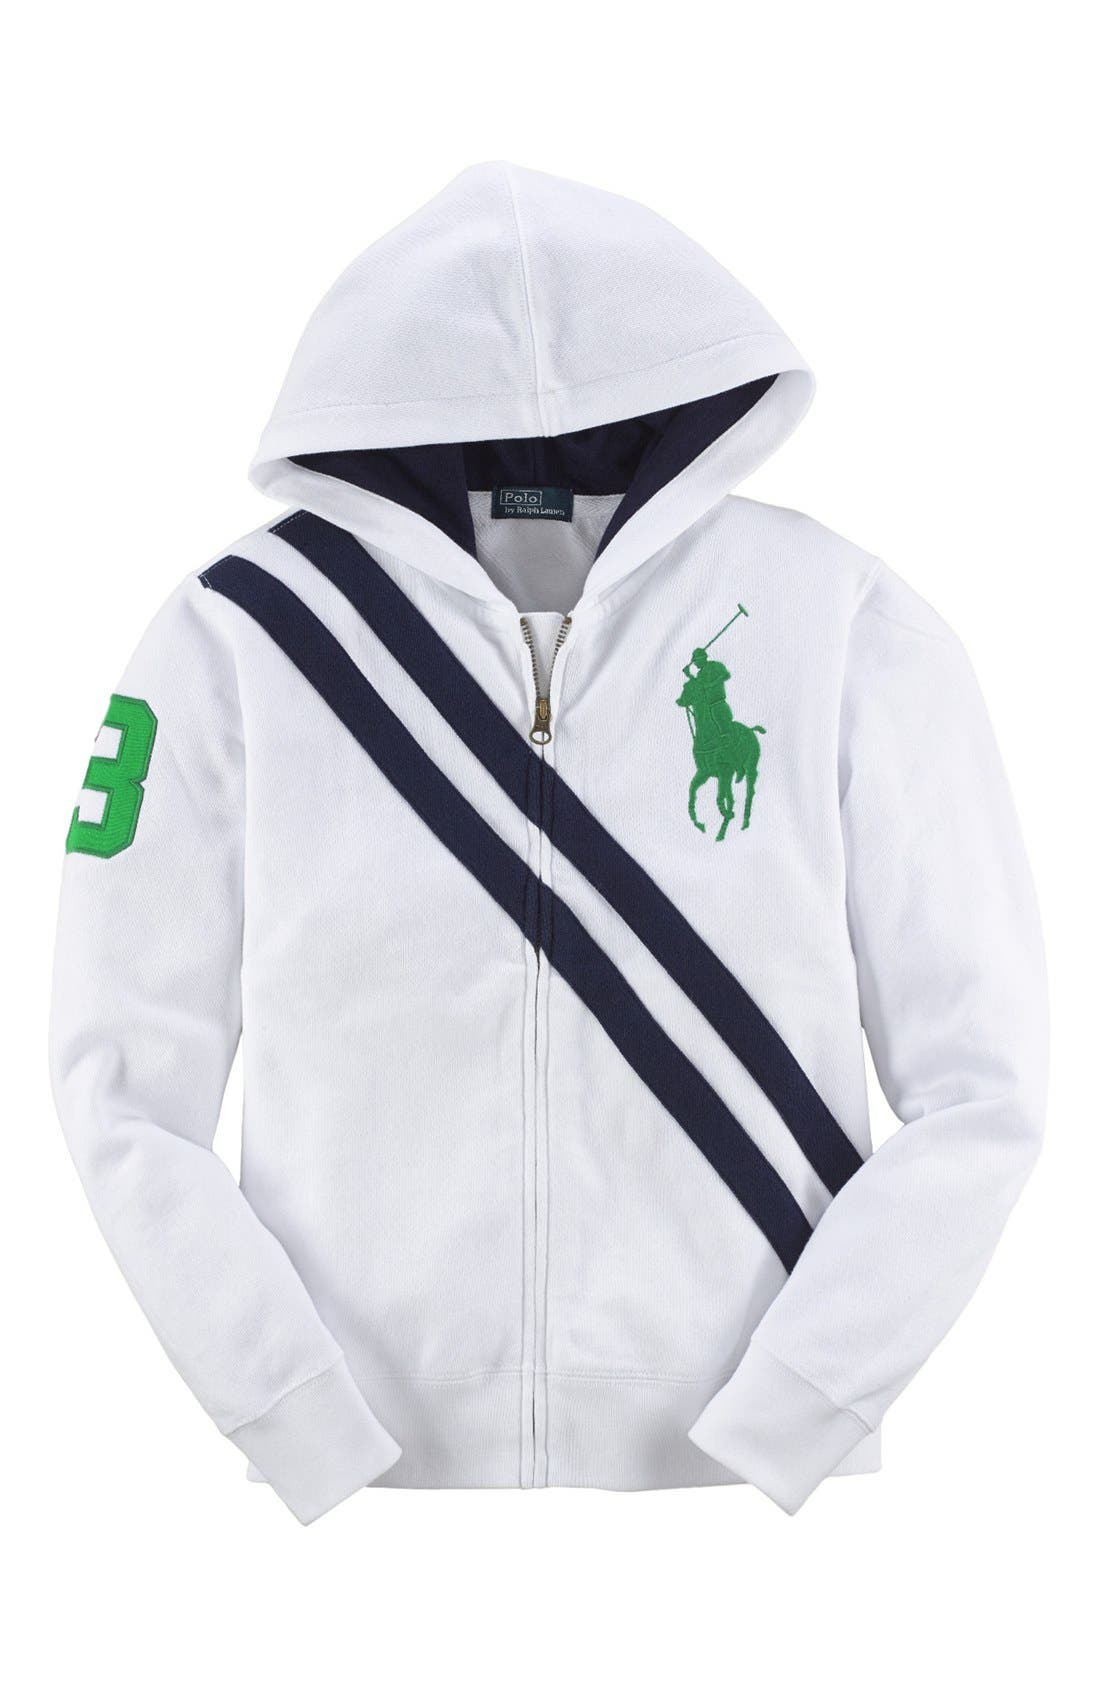 Alternate Image 1 Selected - Ralph Lauren 'Atlantic' French Terry Hoodie (Little Boys)